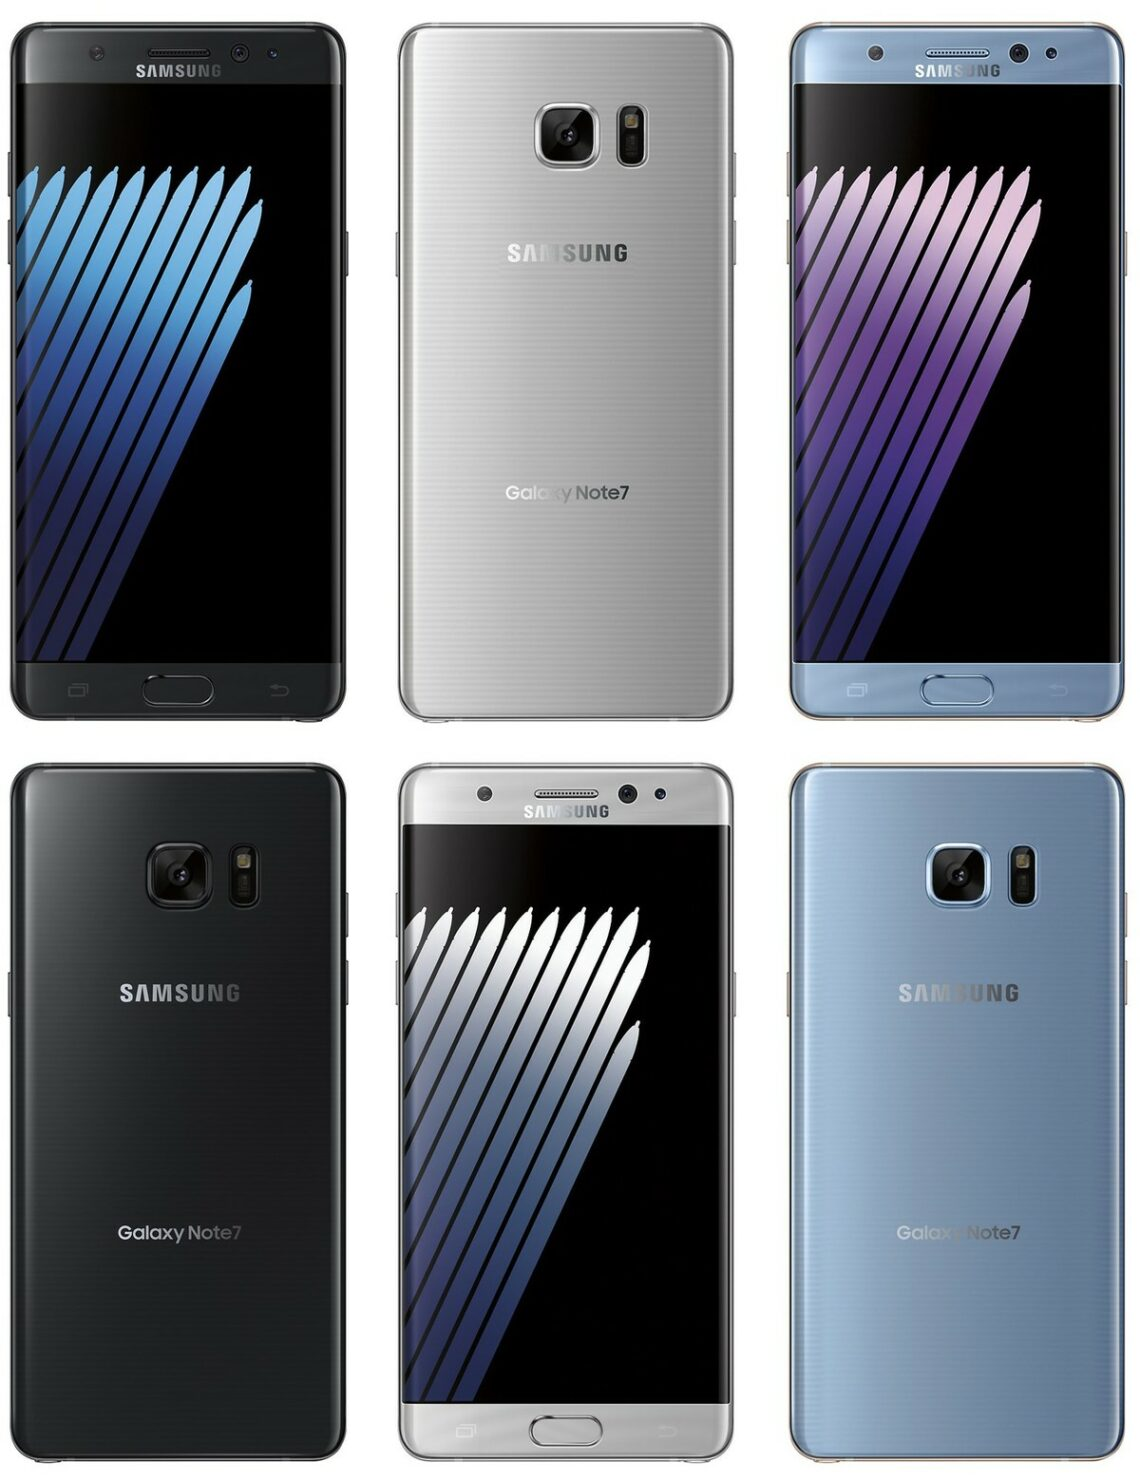 Galaxy Note 7 battery consumption resolution reduction